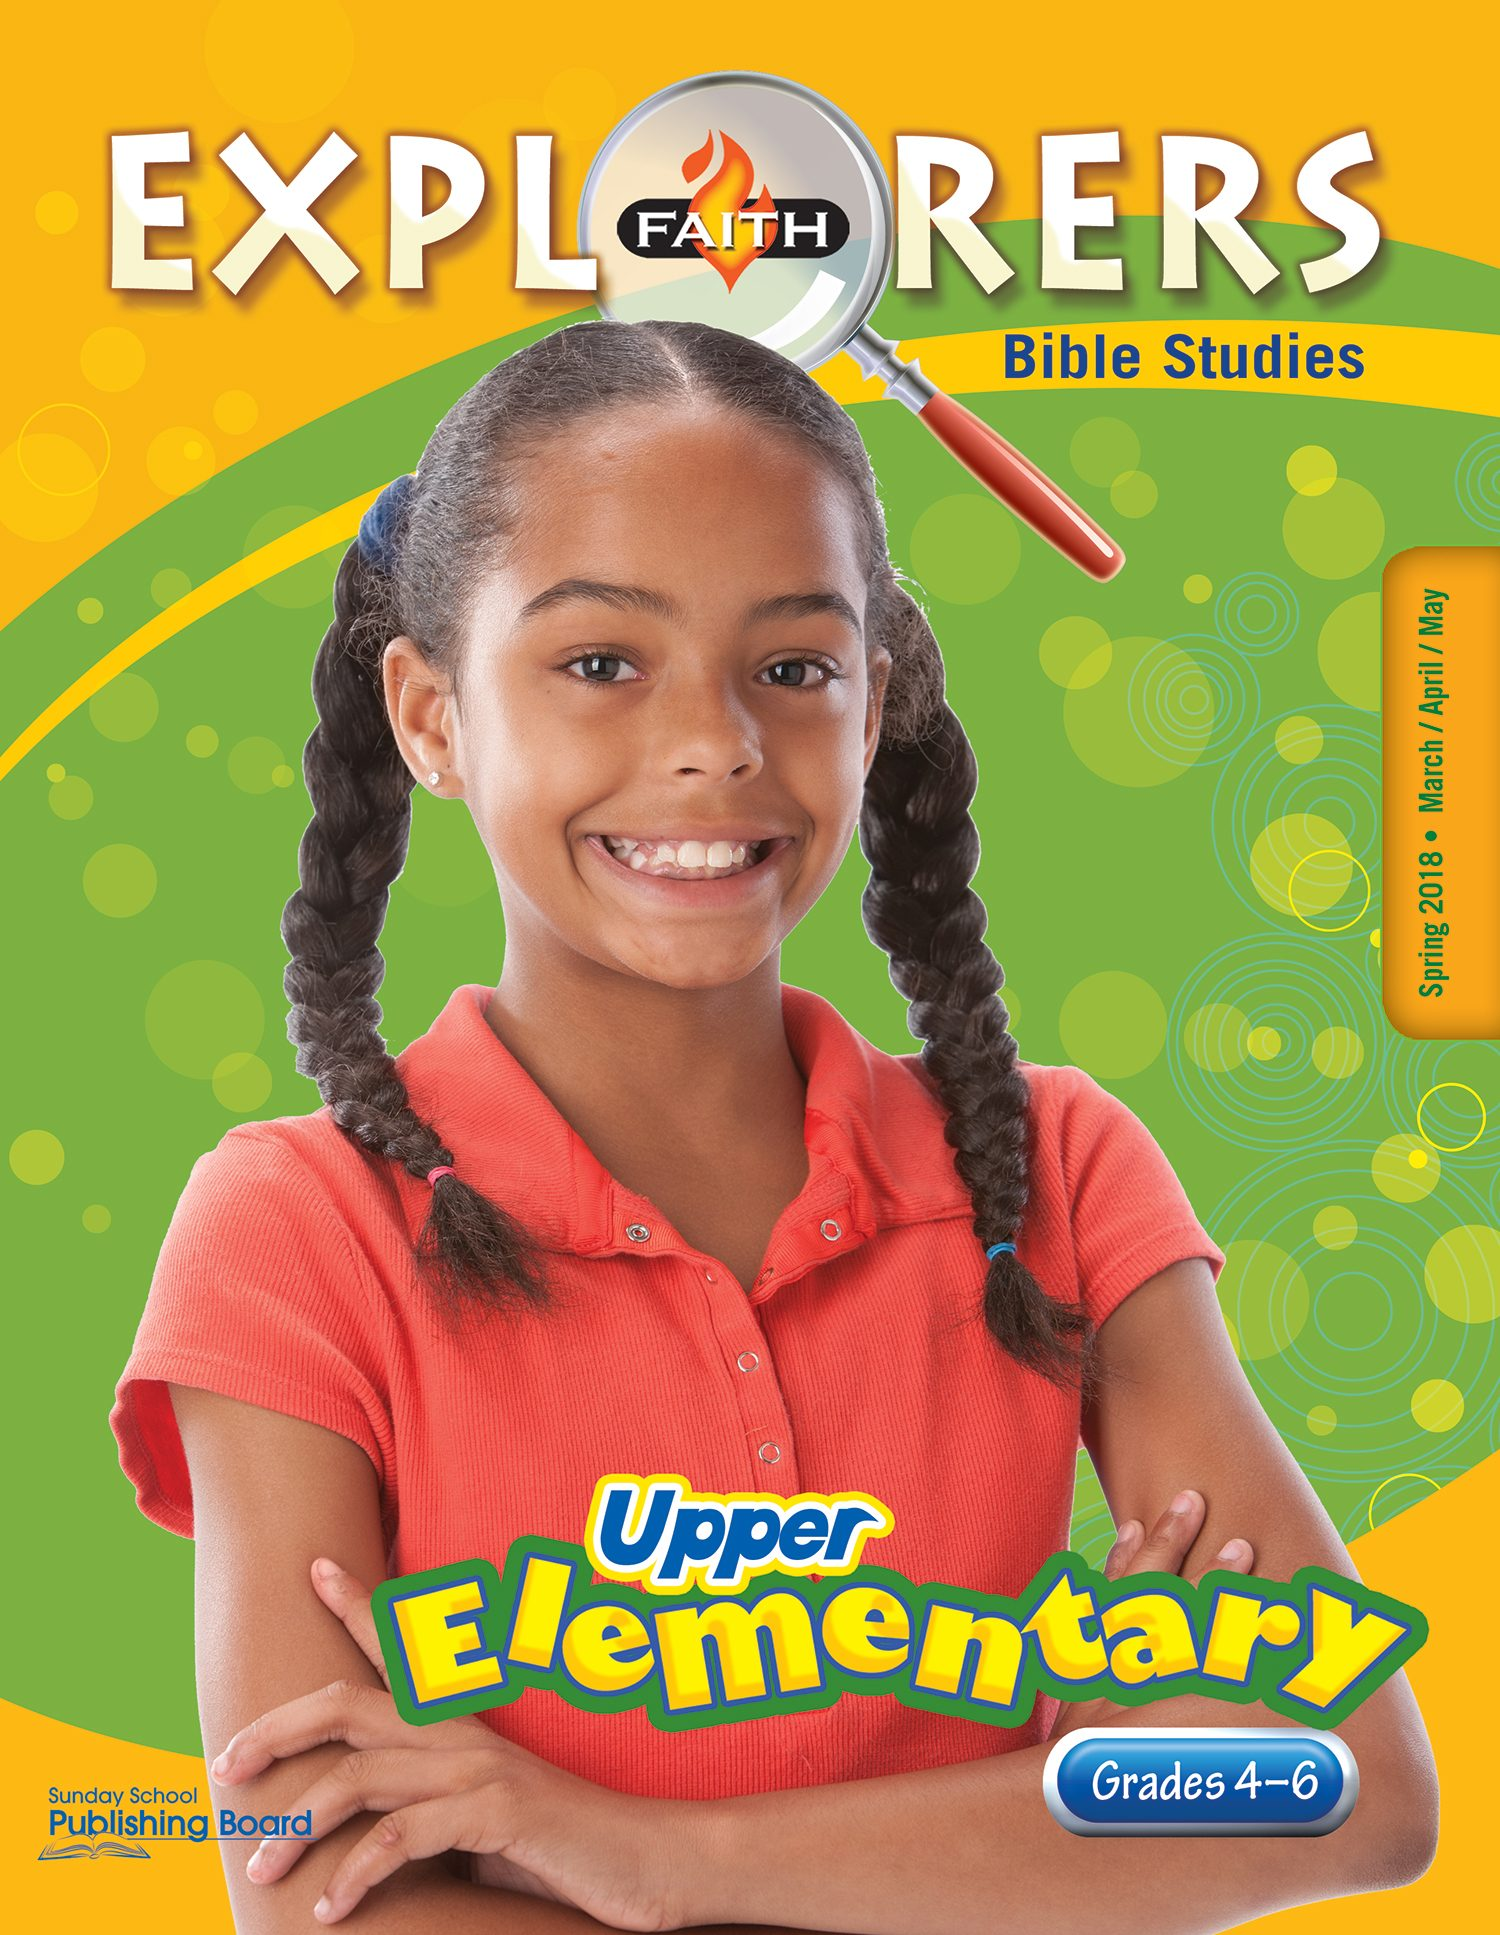 Faith Explorers Bible Studies, Upper Elementary (Grades 4-6)